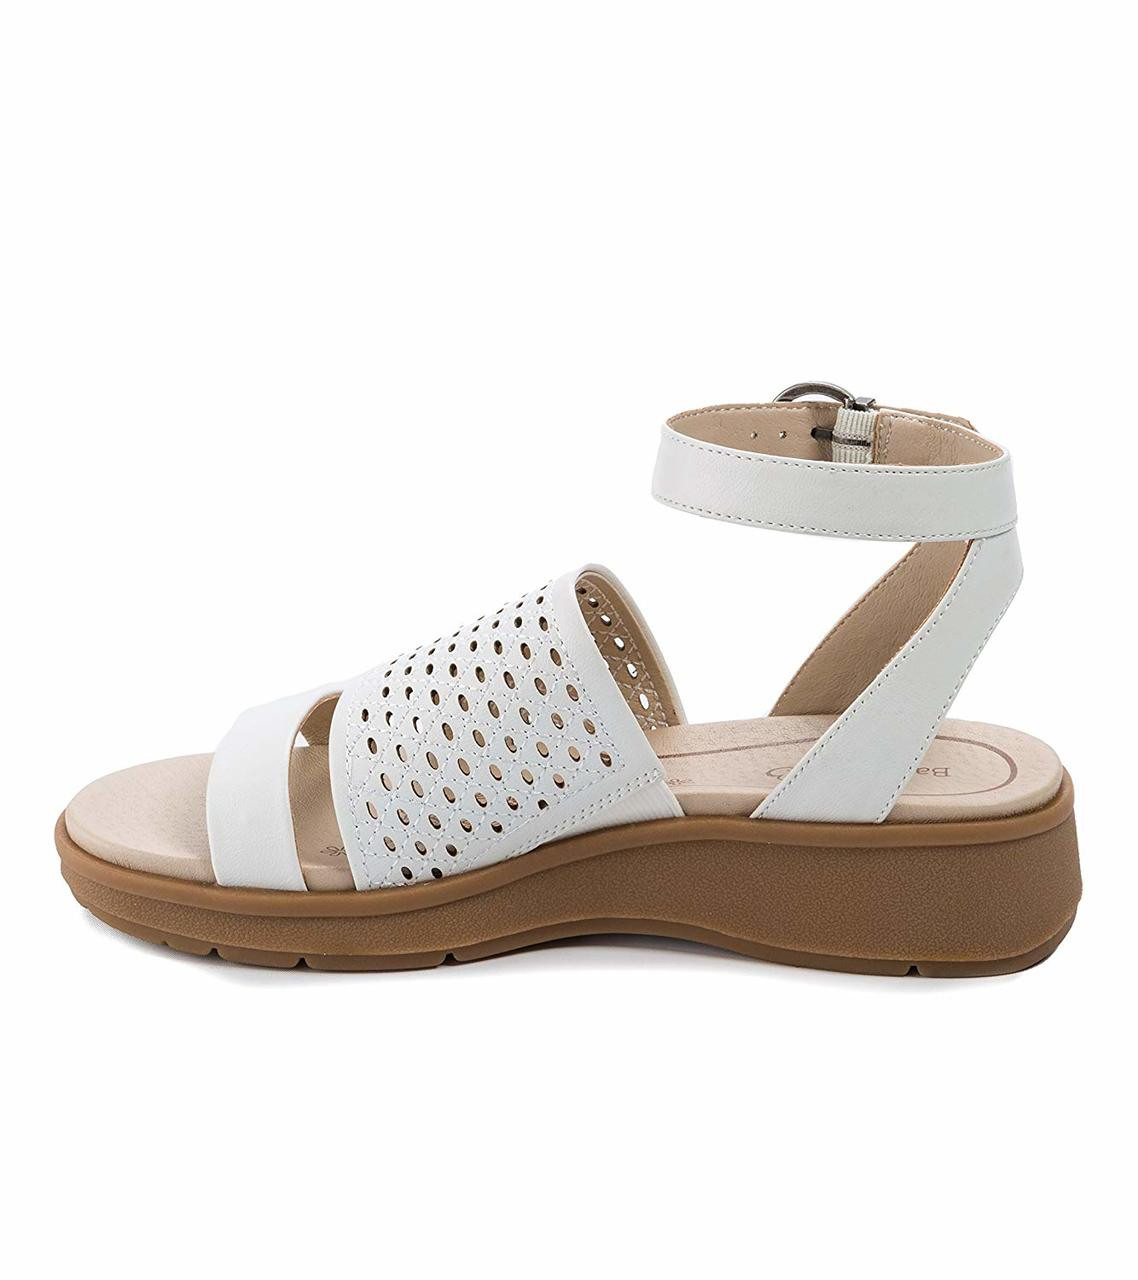 Ankle Traps Rockwell Toe C071afdd Womens Strap Sandals~pp Bare Open Casual D9IYEHWe2